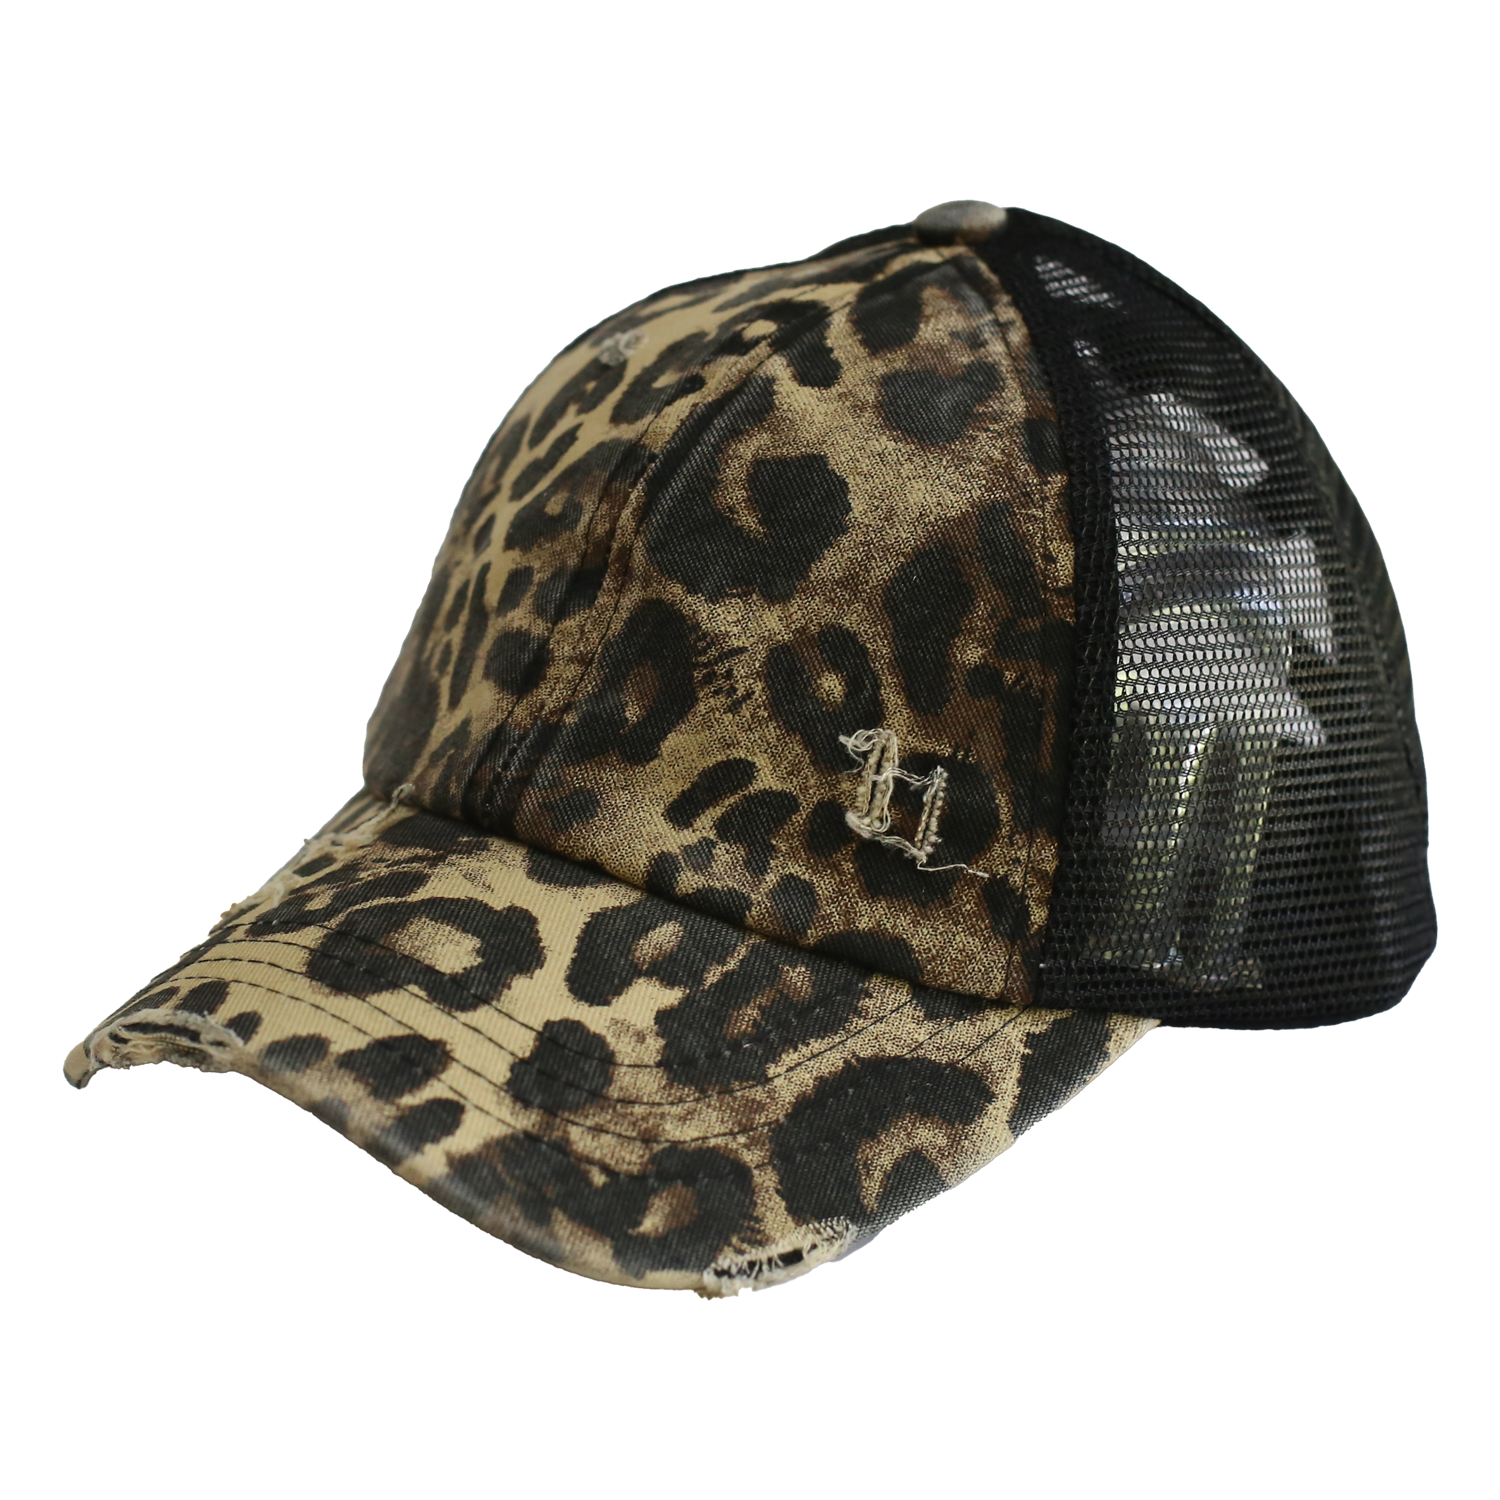 BT-780 C.C Criss Cross Pony Cap LEOPARD/BLACK